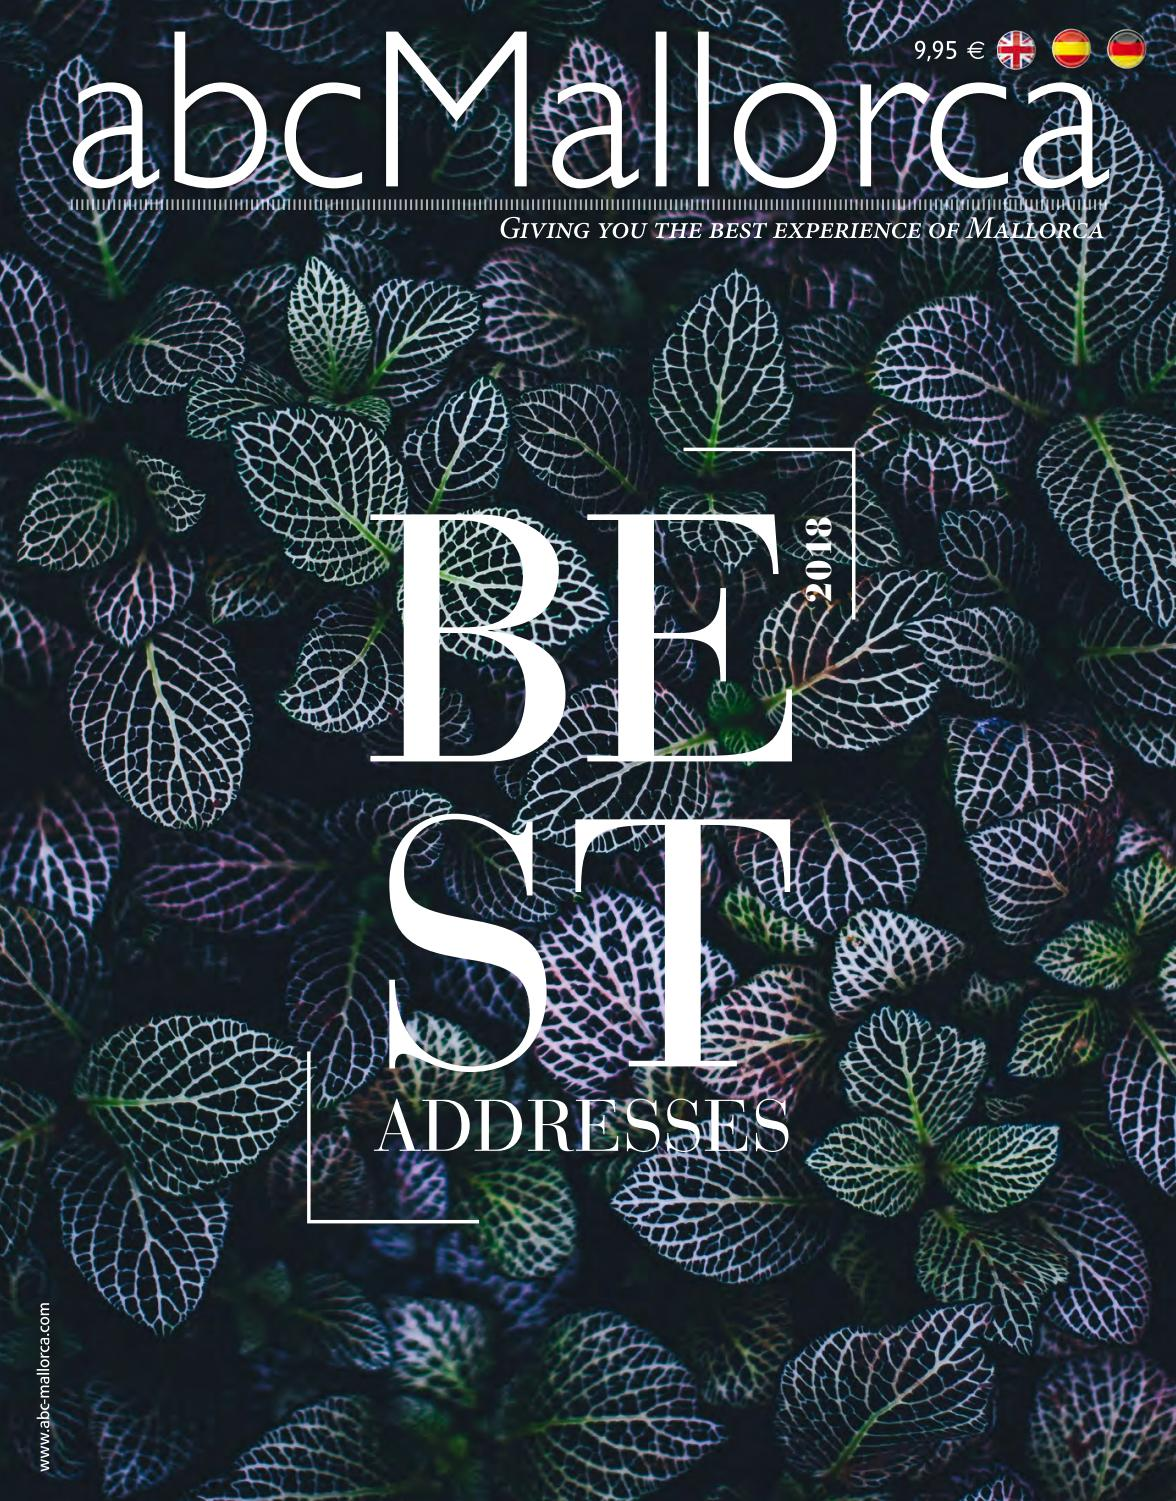 113th abcMallorca Best Addresses 2018 by abcMallorca - issuu